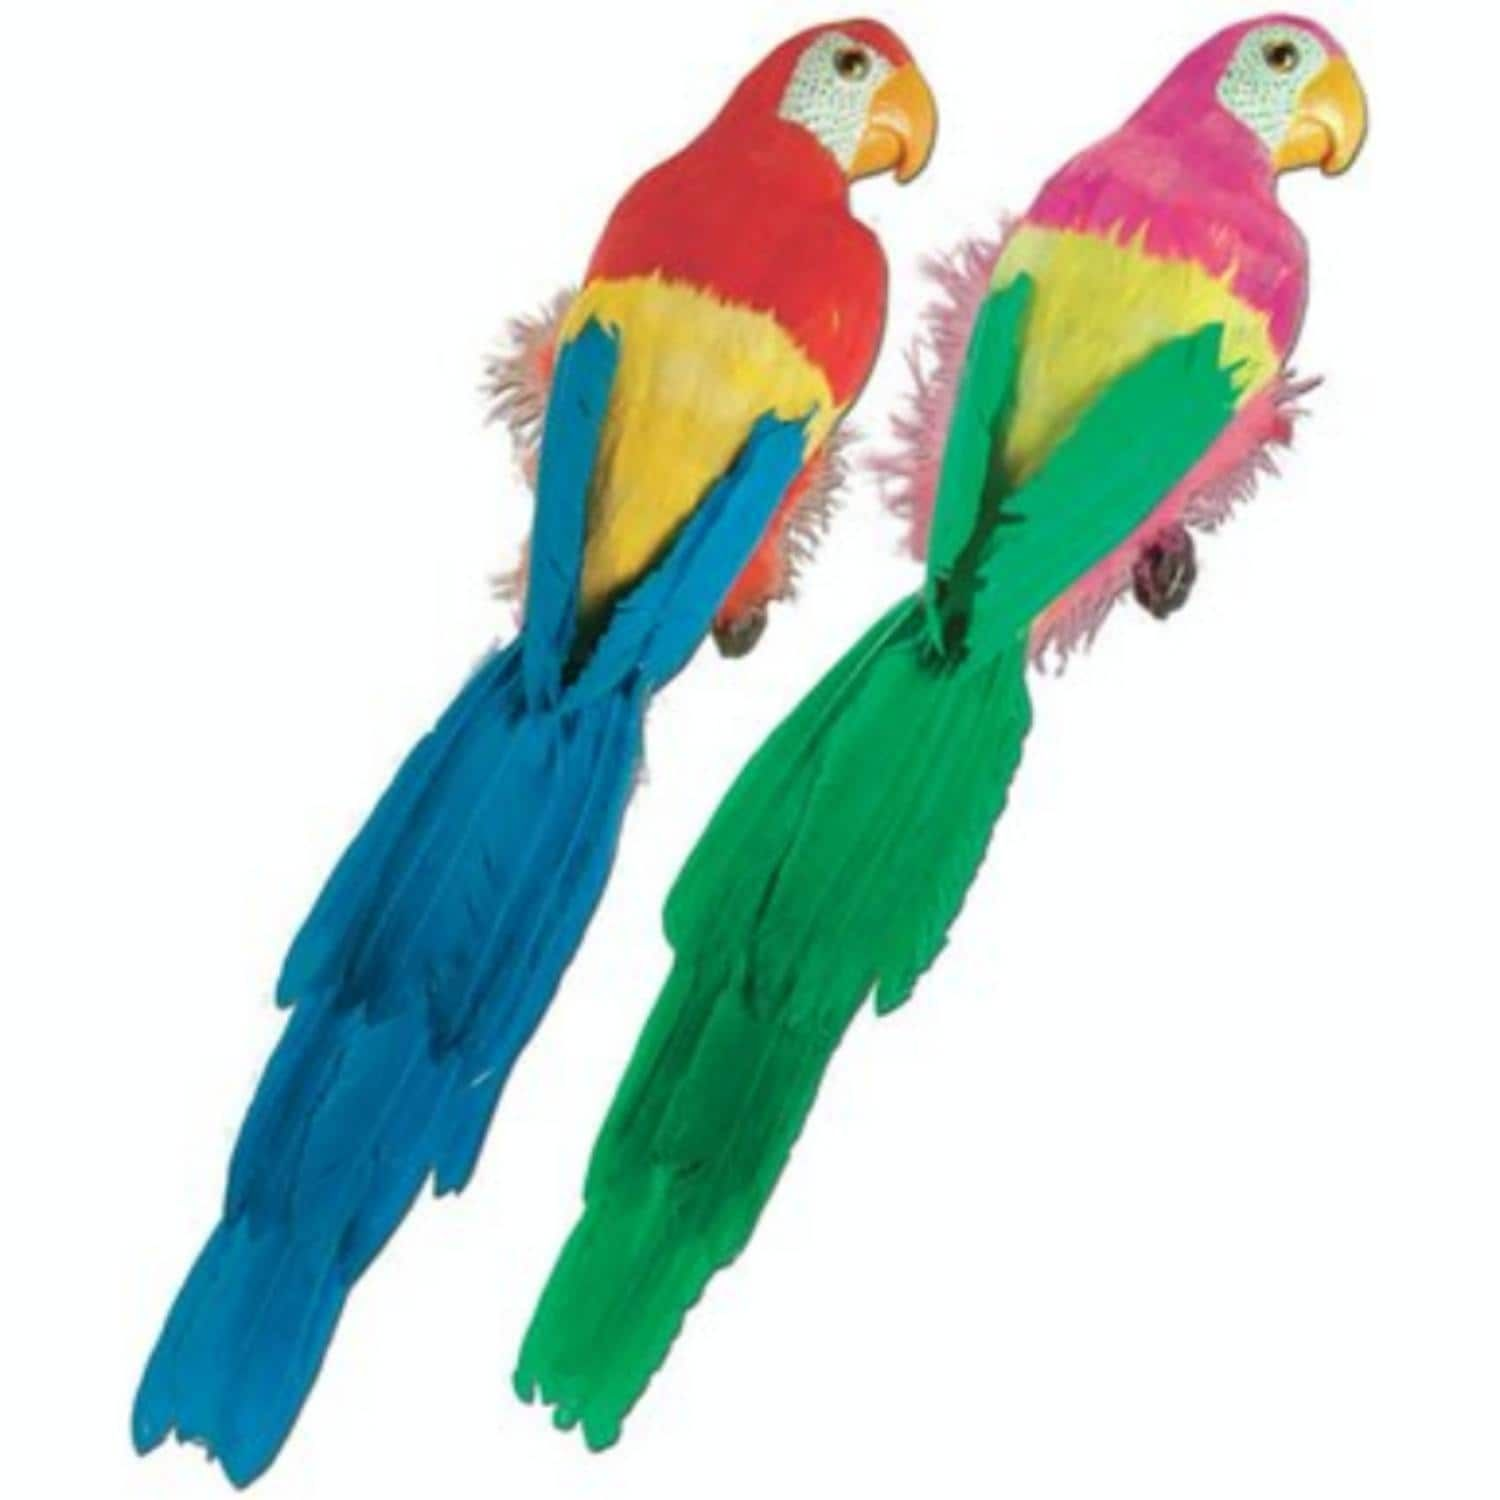 Pack of 6 Large Vibrant Brightly Colored Feathered Parrot Luau Party Decorations 20, Multi